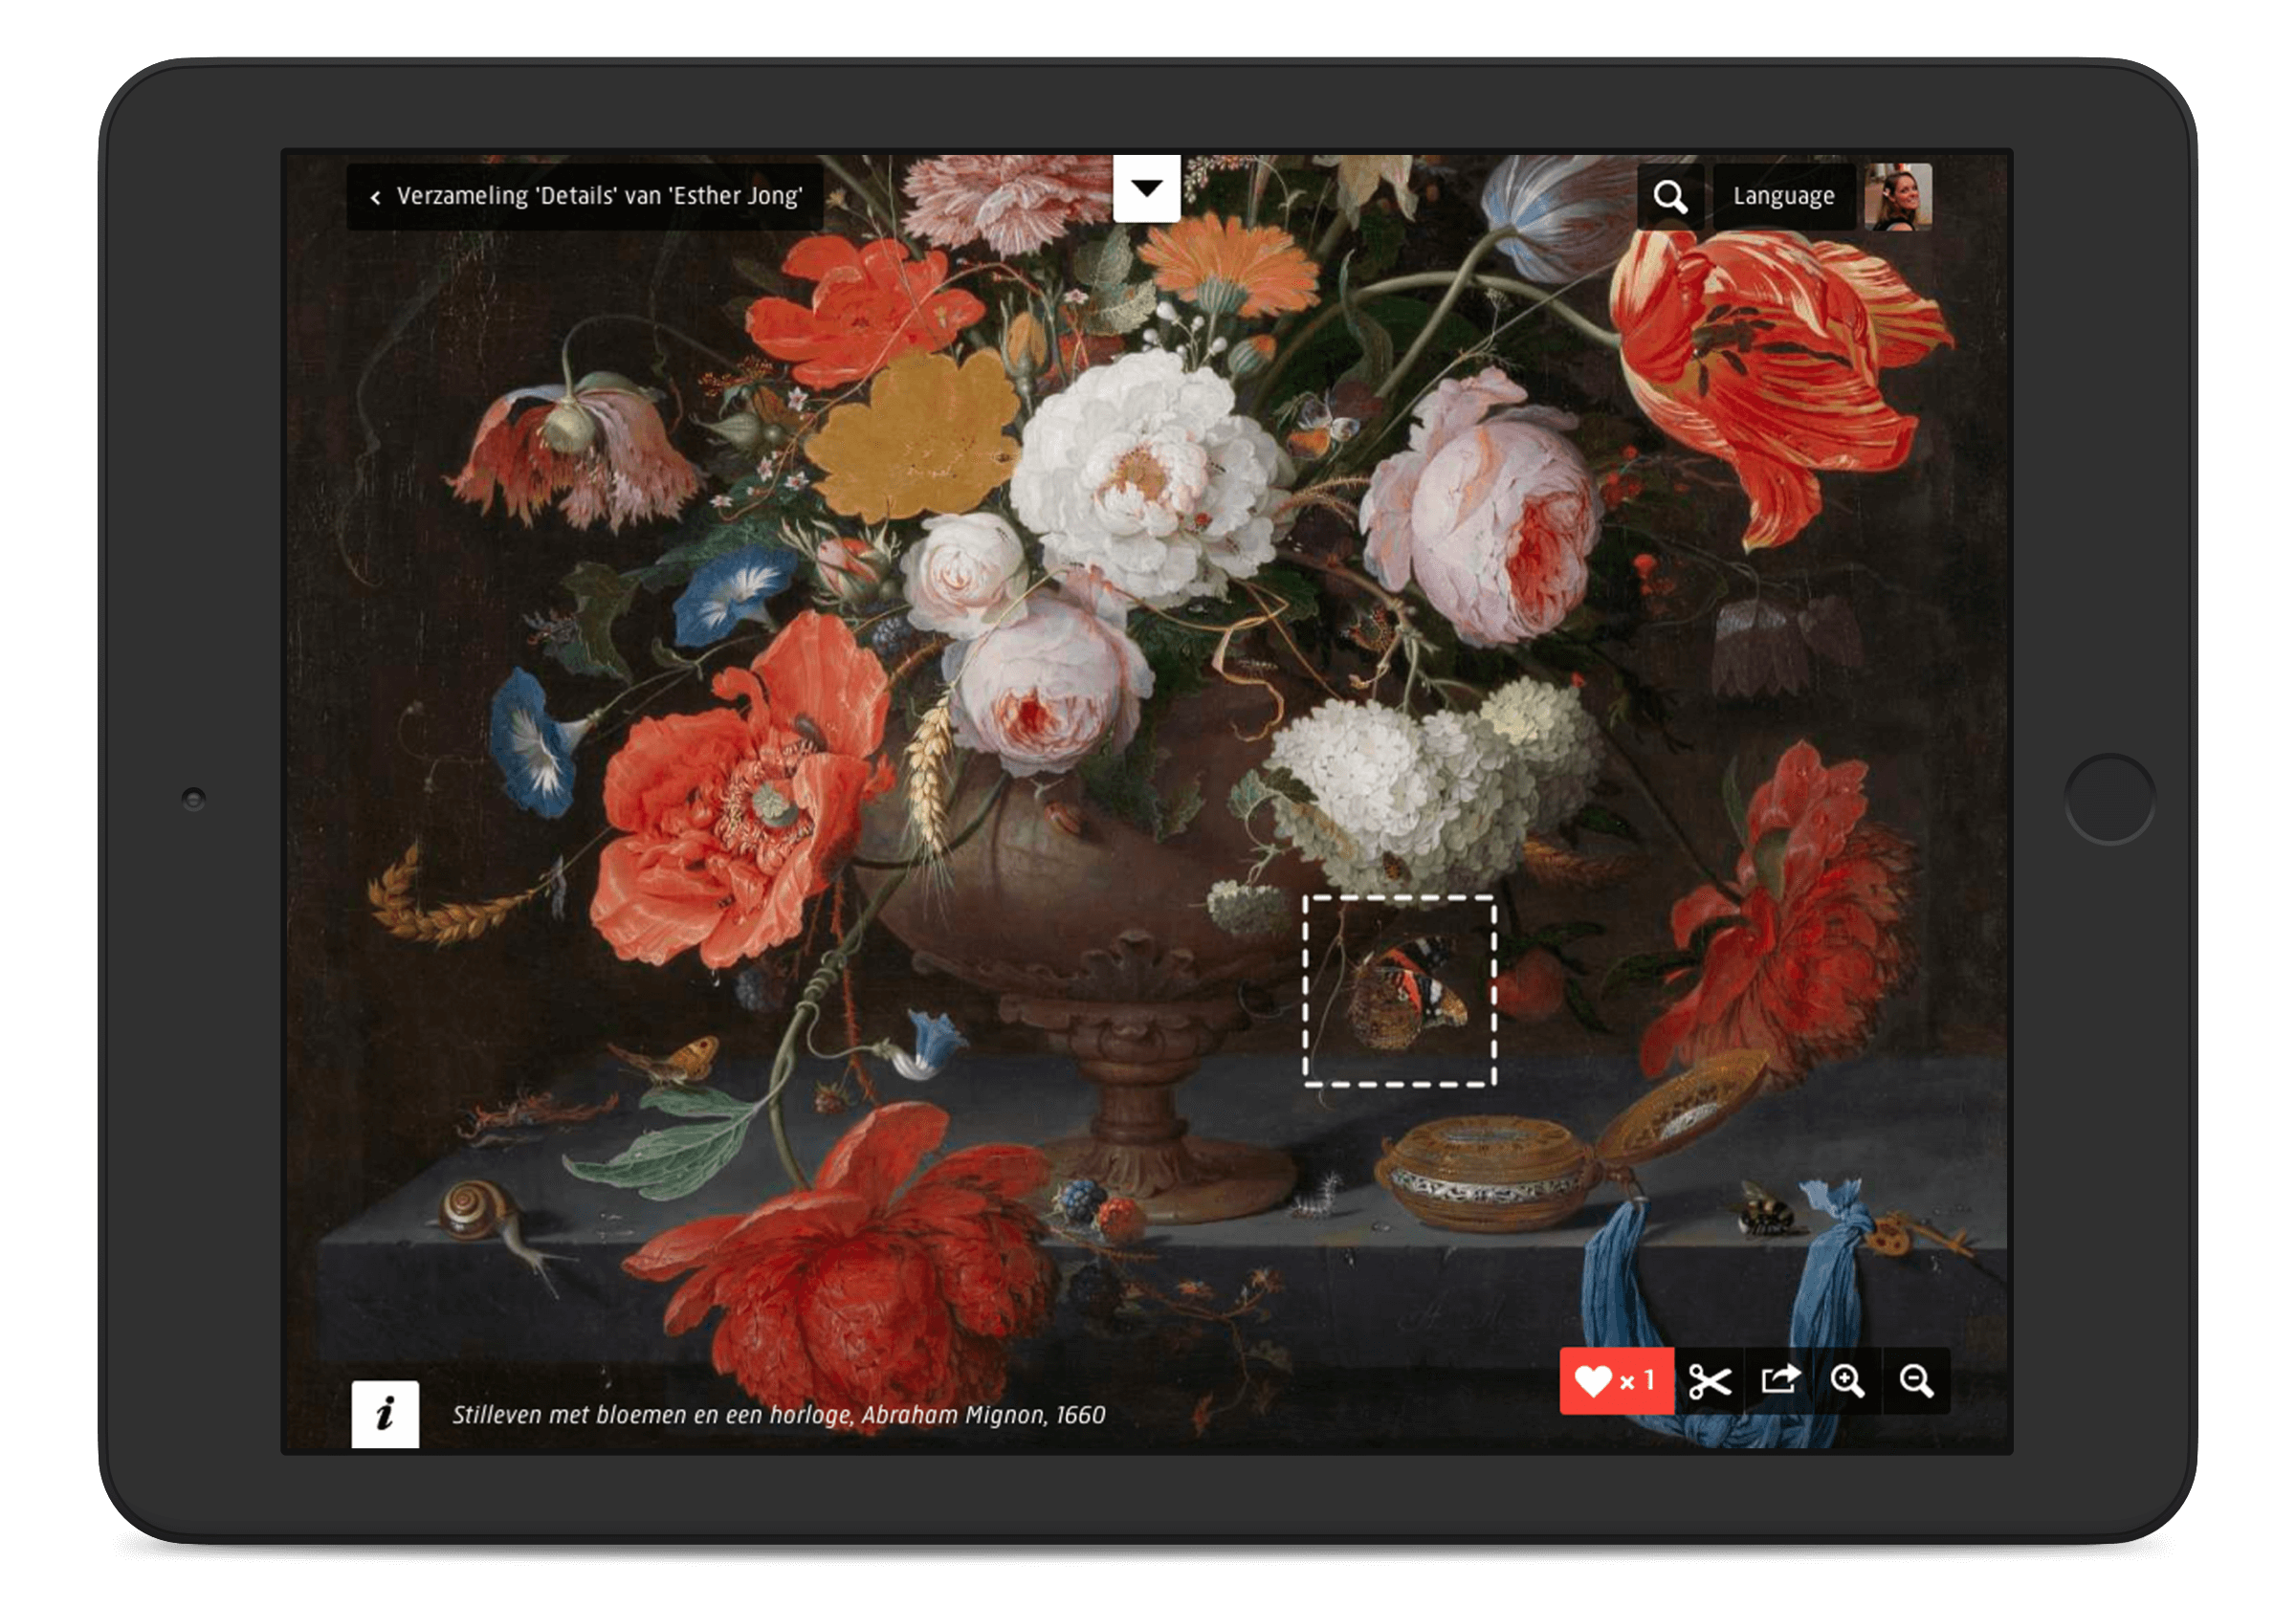 Rijksmuseum website, object detail page